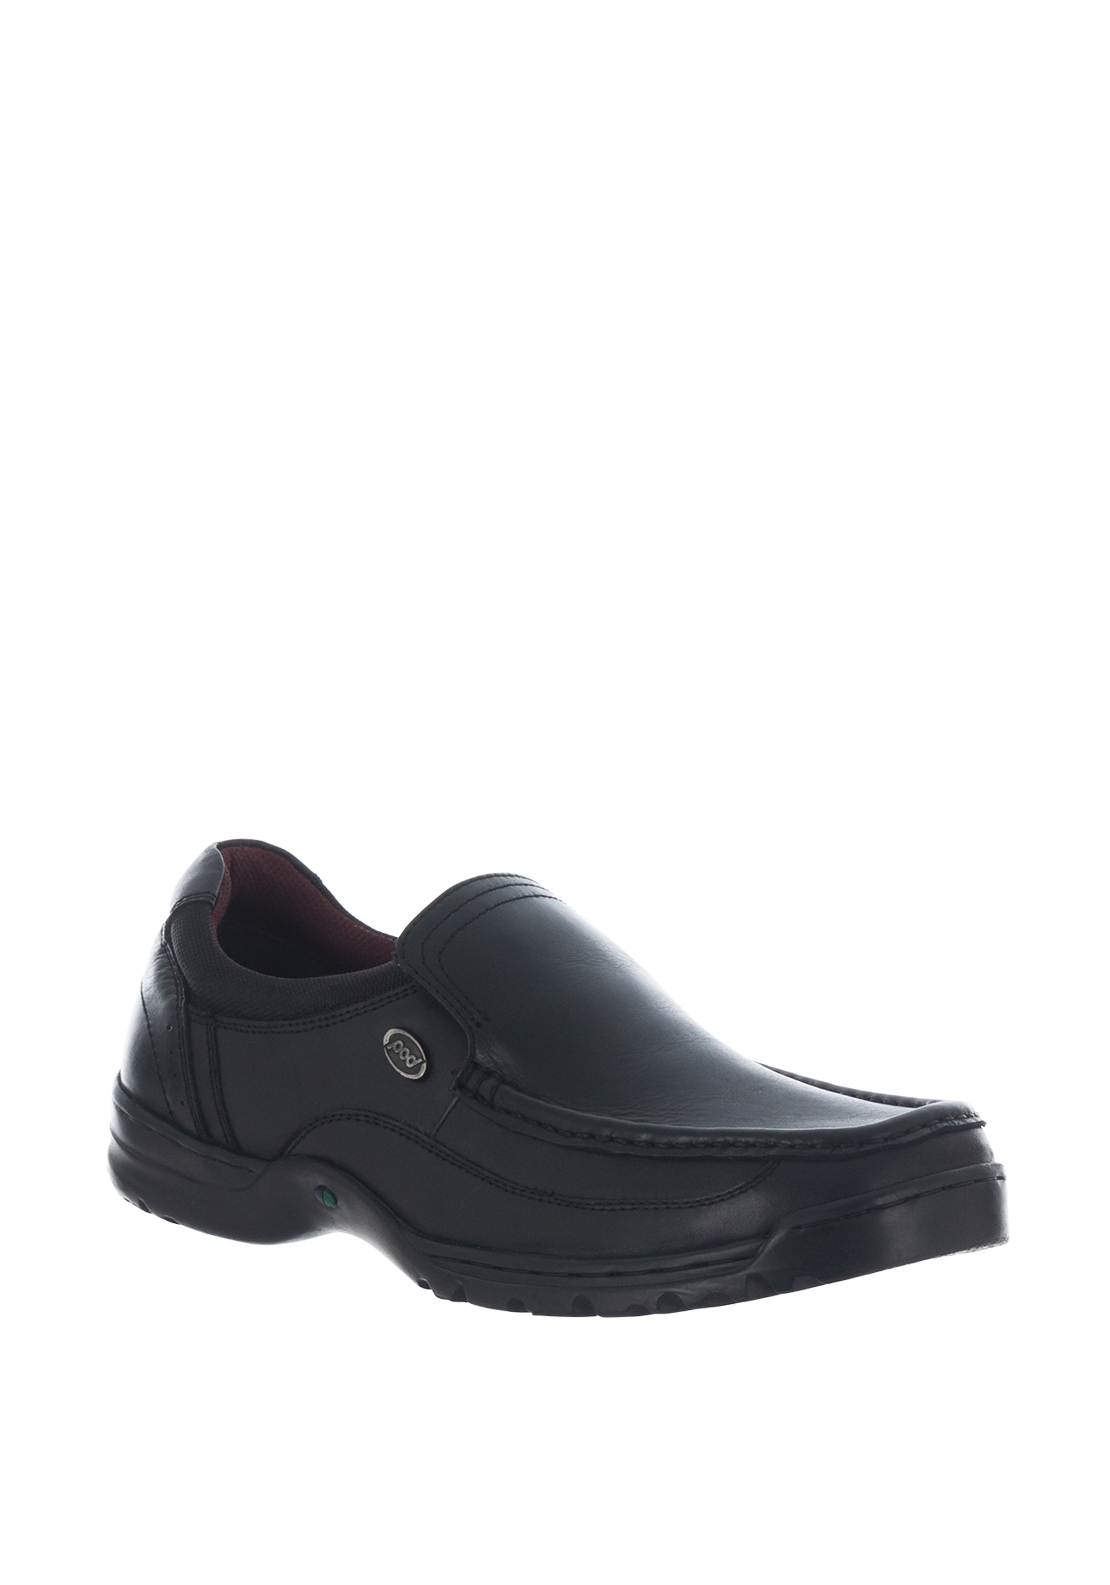 Paul O' Donnell by Pod Edd Leather Shoe, Black